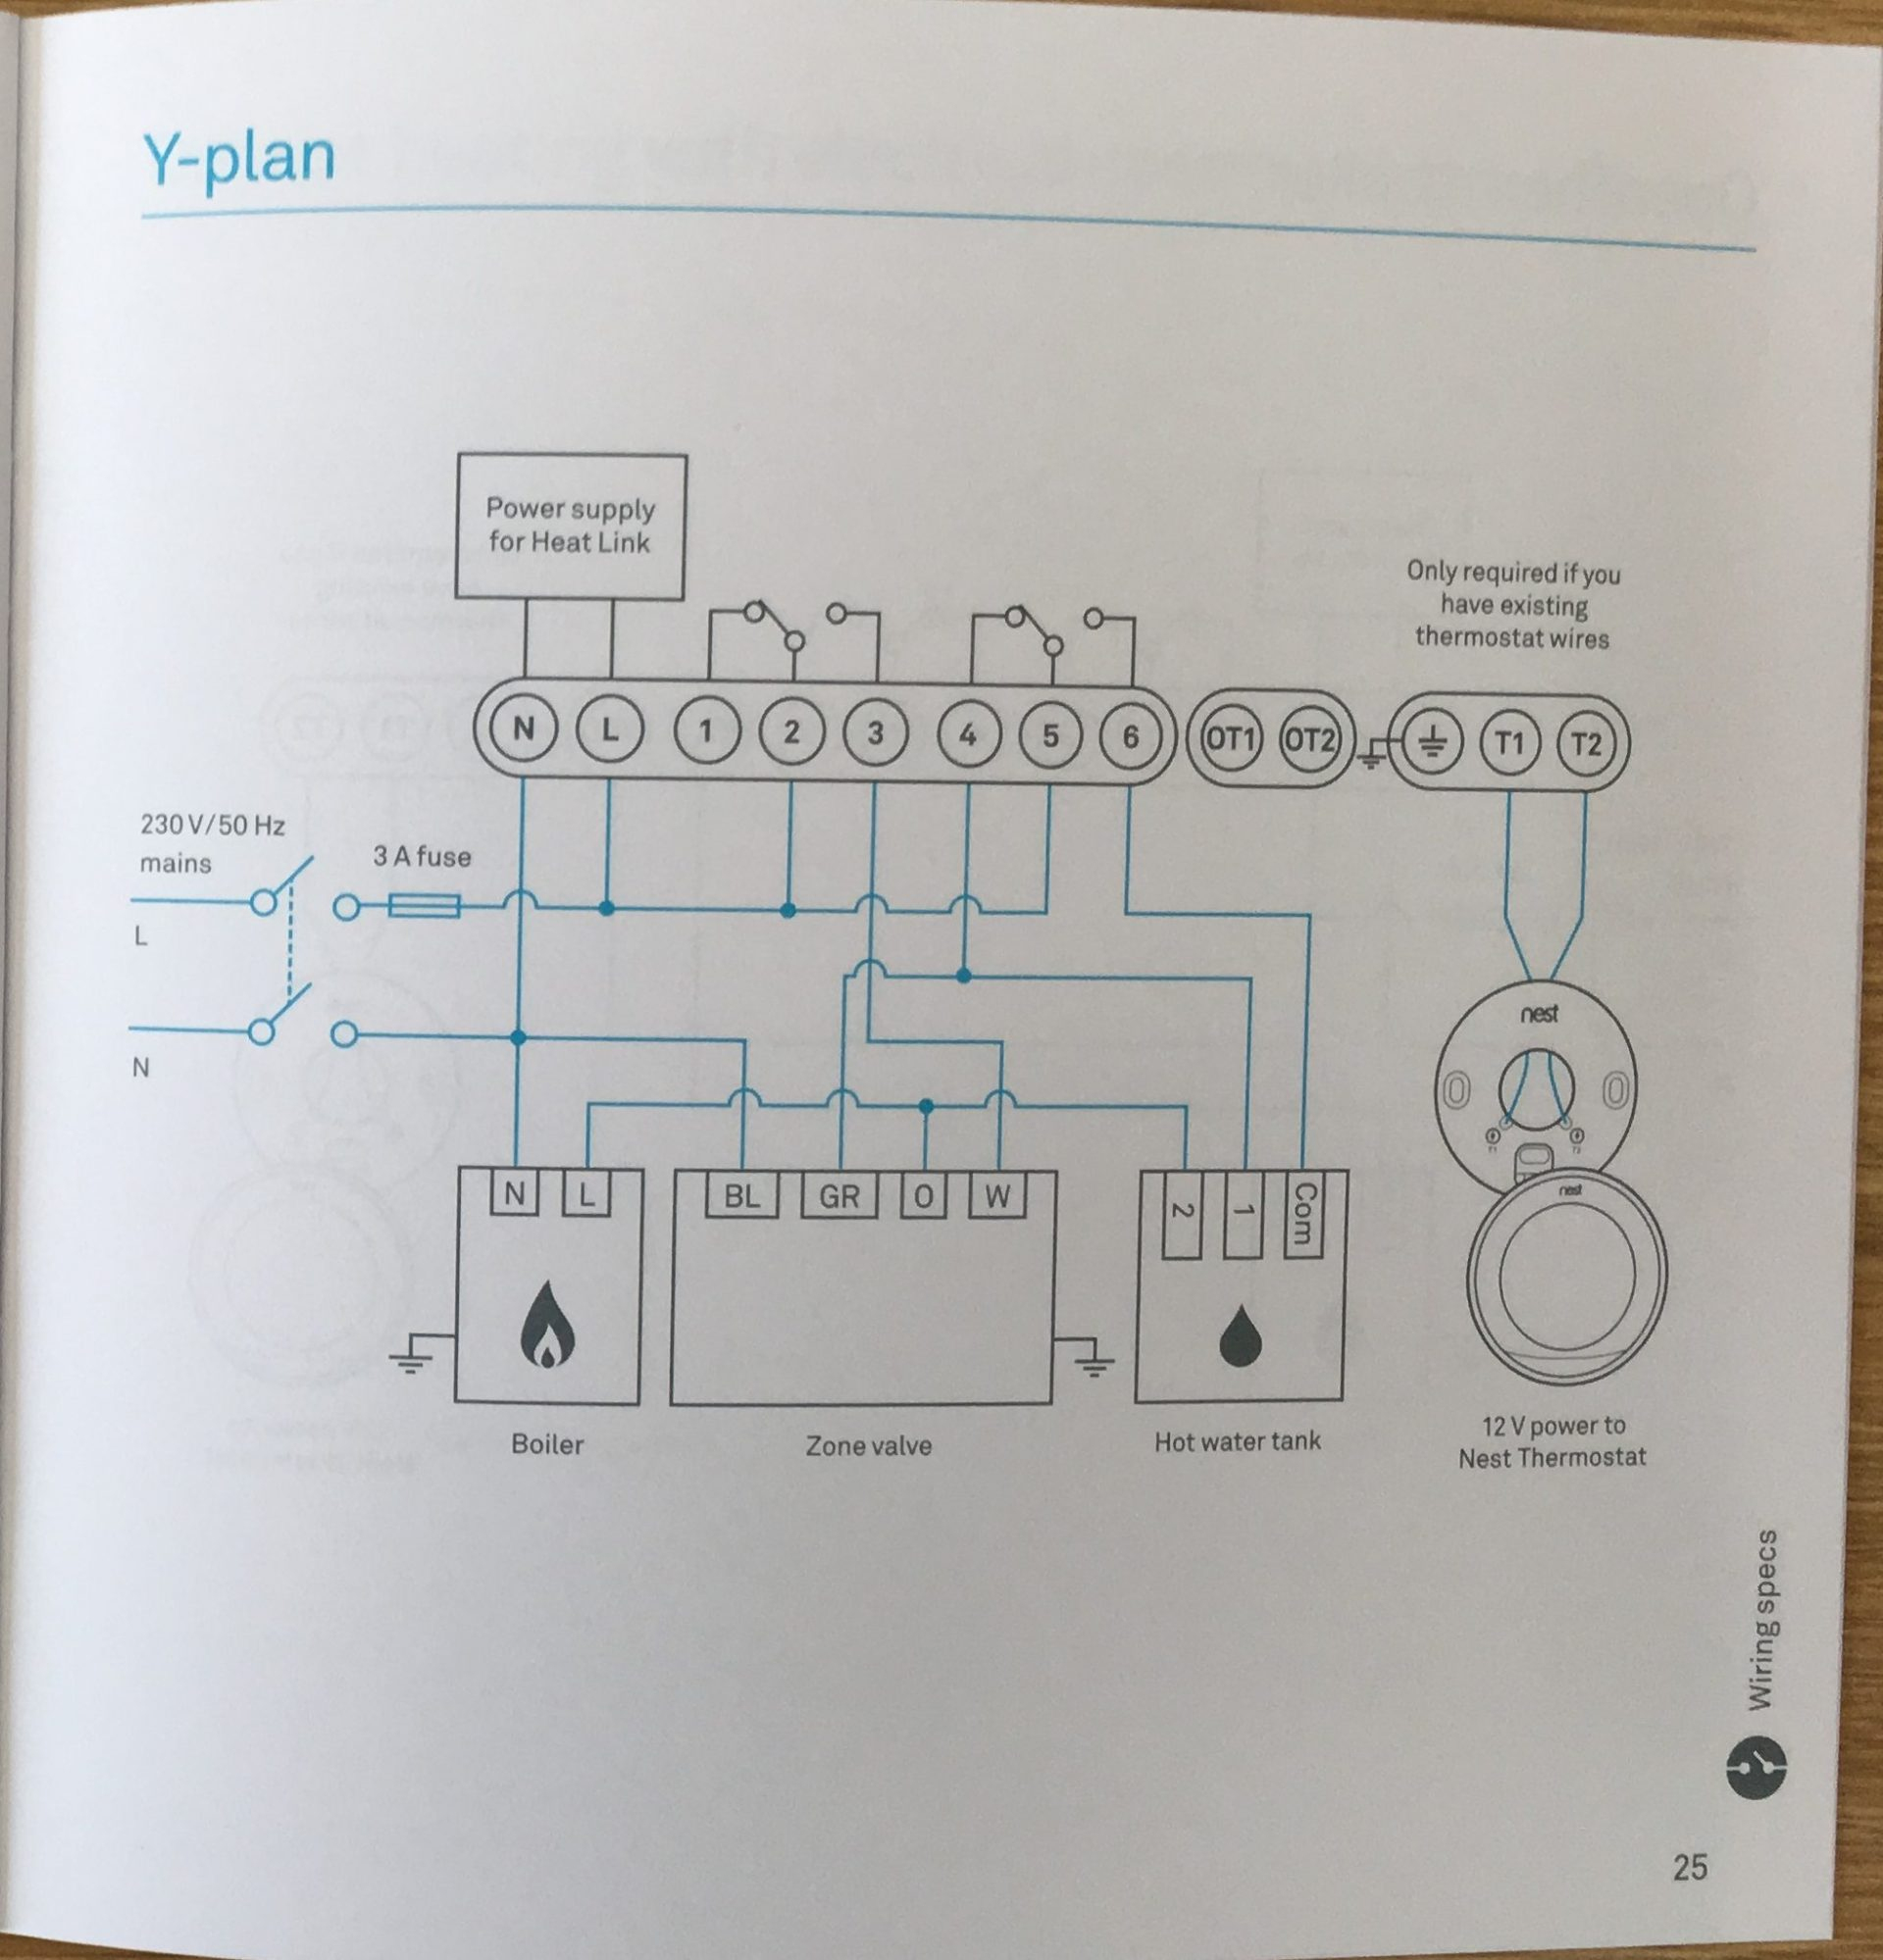 How To Install The Nest Learning Thermostat (3Rd Gen) In A Y-Plan - Nest Wiring Diagram For Worcester